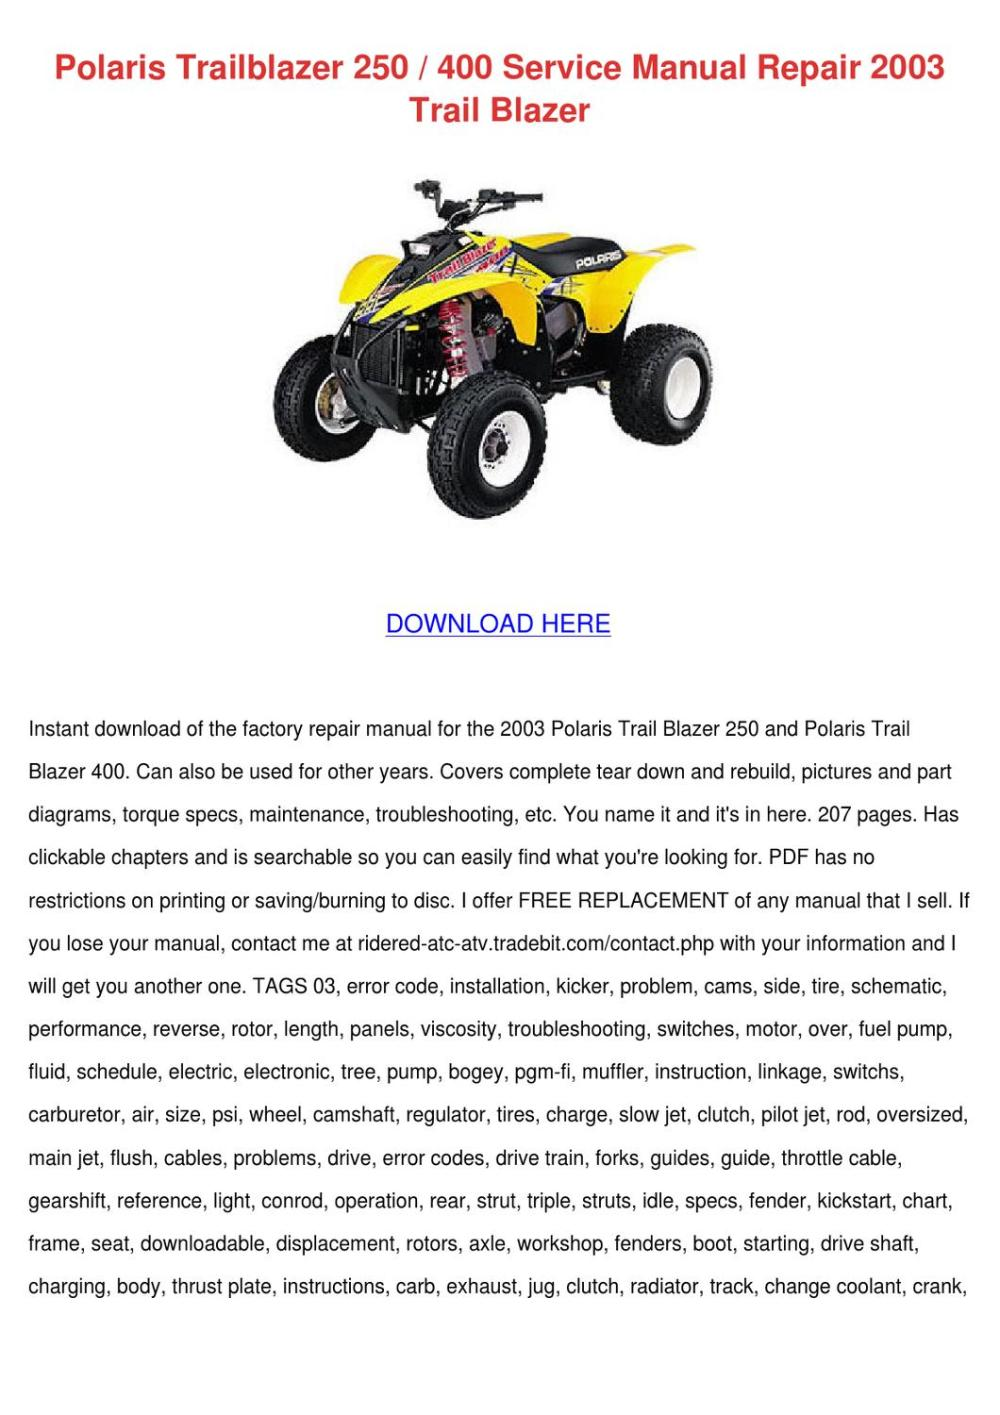 medium resolution of polaris trailblazer 250 400 service manual re